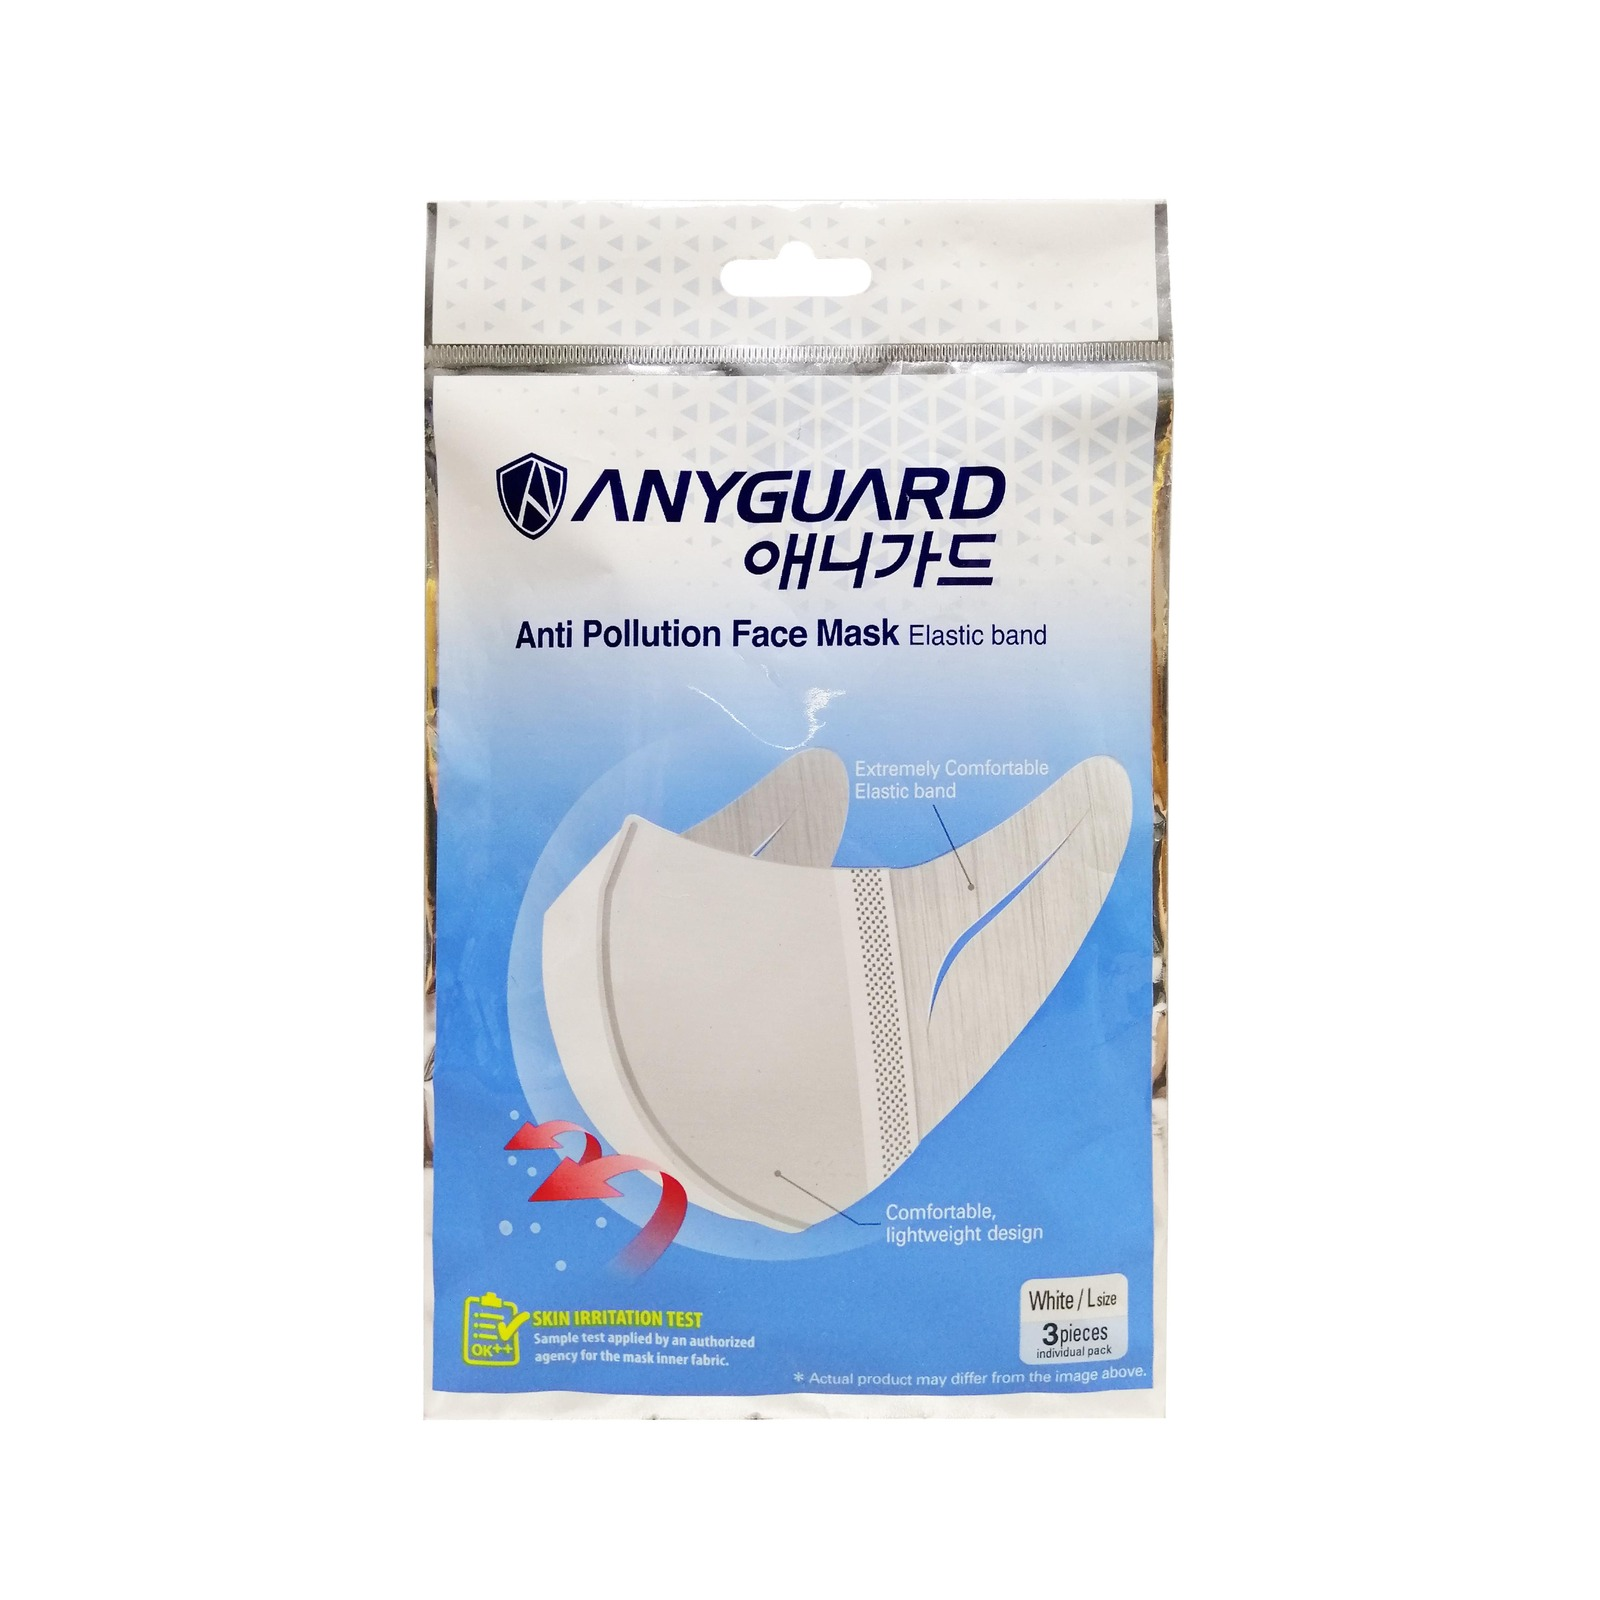 Anyguard 2D Elastic Band Face Mask Large for Adults (White)